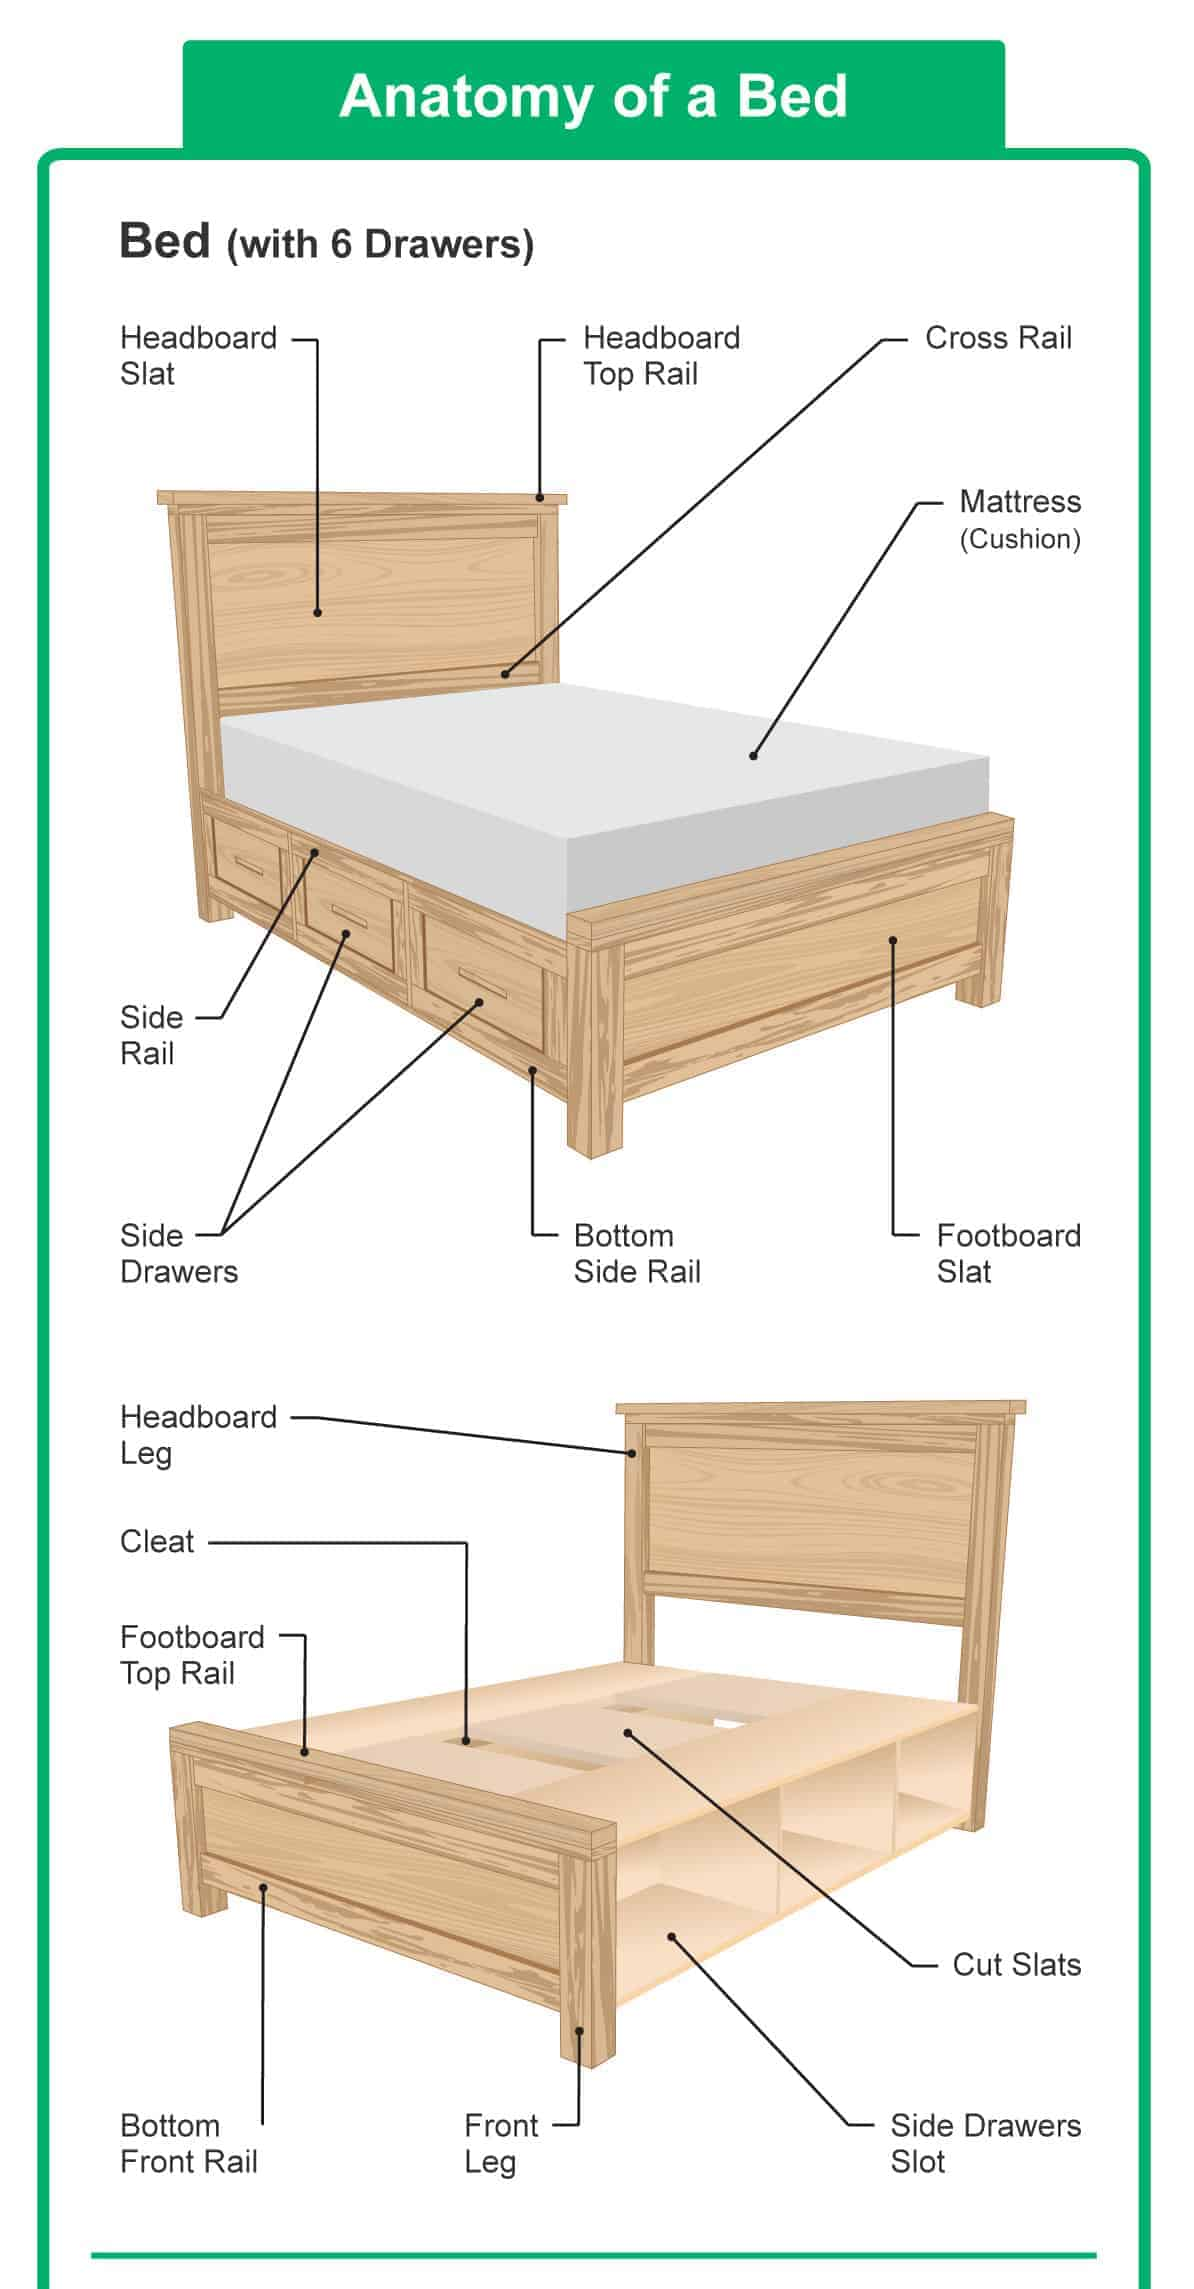 Diagram illustrating the different parts of a bed